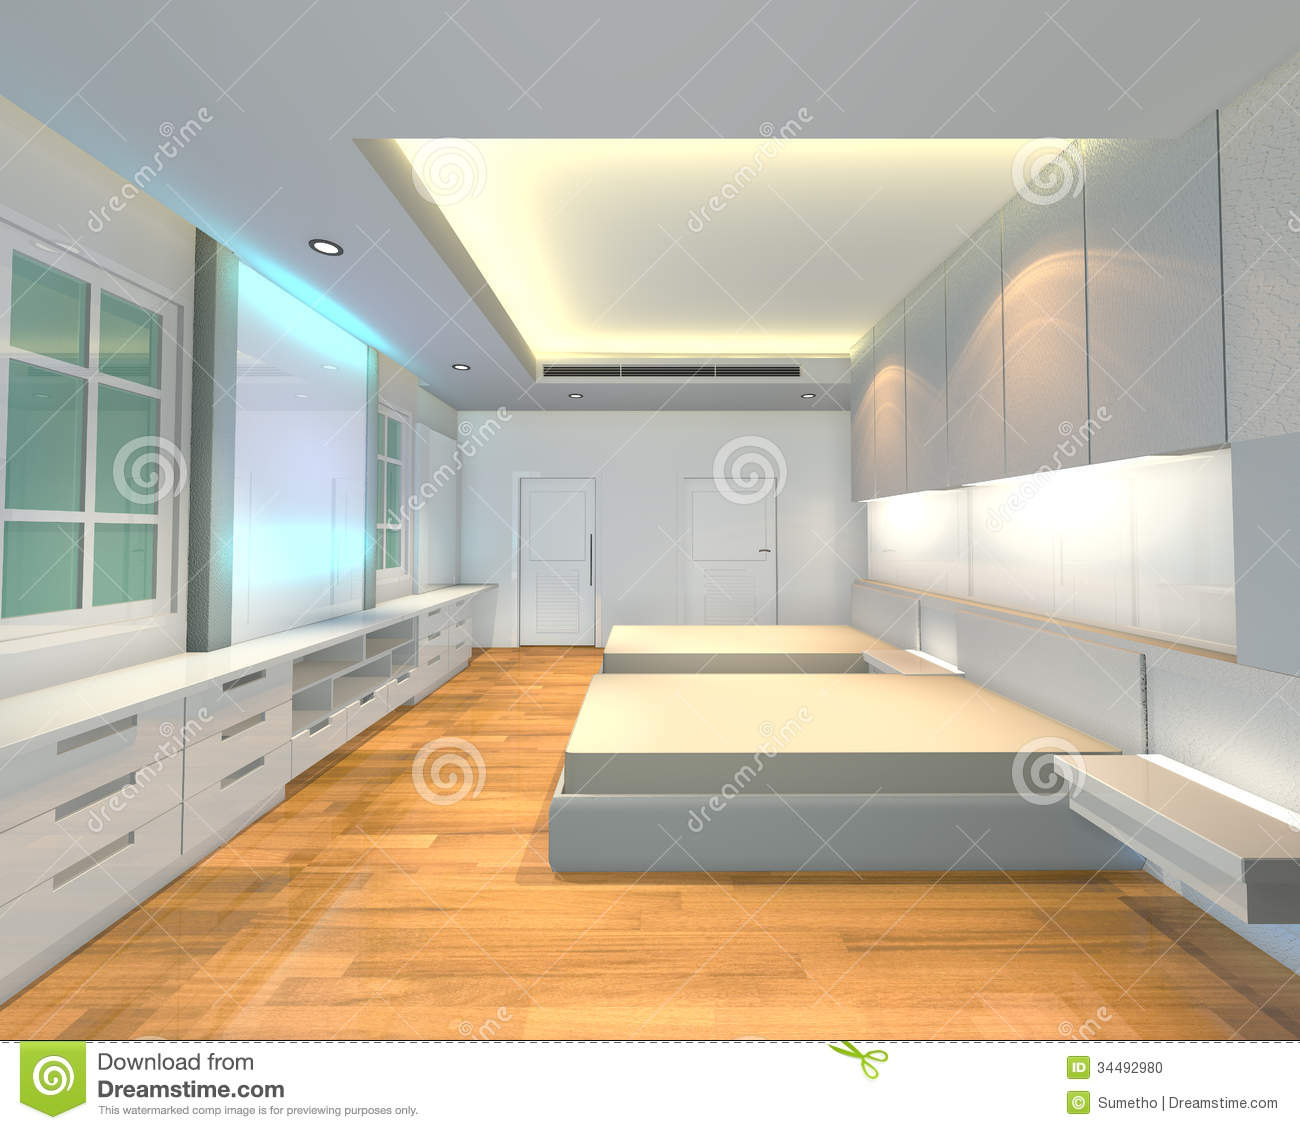 Minimalist Interior Design Bedroom Bedroom Cabinet Design Images Bedroom Sets Images Bedroom Themes: Interior Design Bedroom White Theme Stock Photo